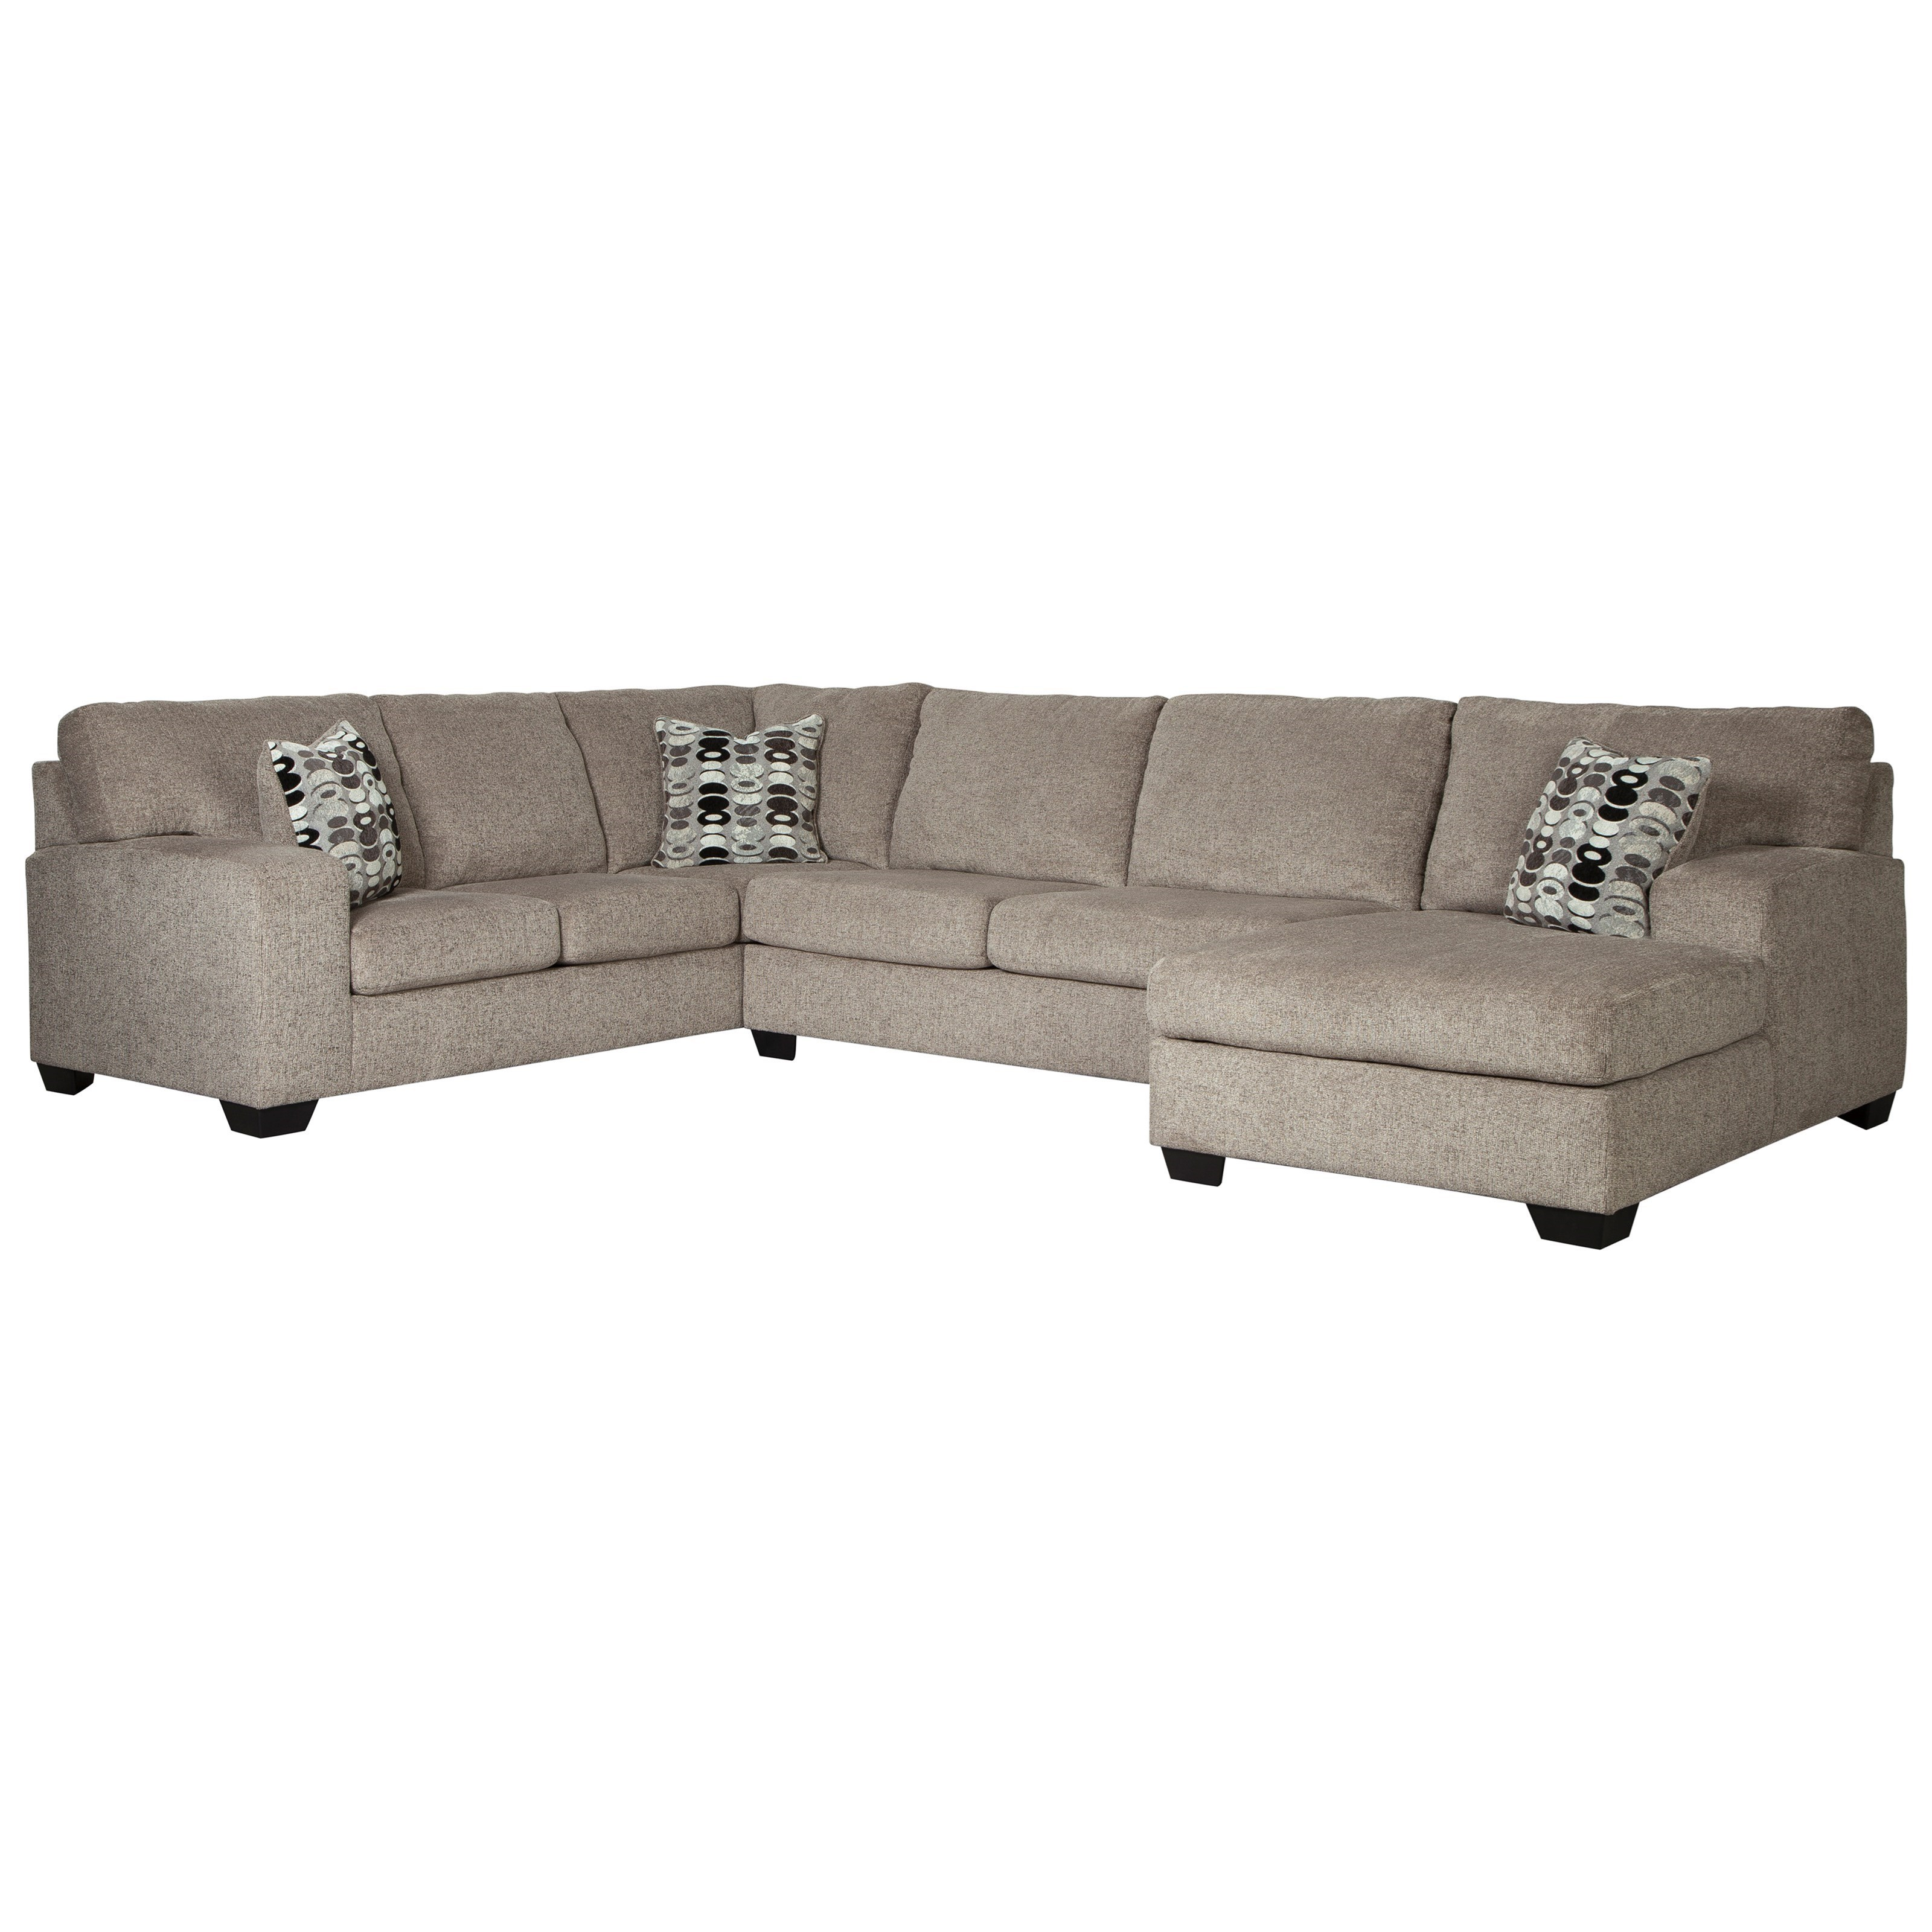 Ballinasloe 3-Piece Sectional by Signature Design by Ashley at Northeast Factory Direct